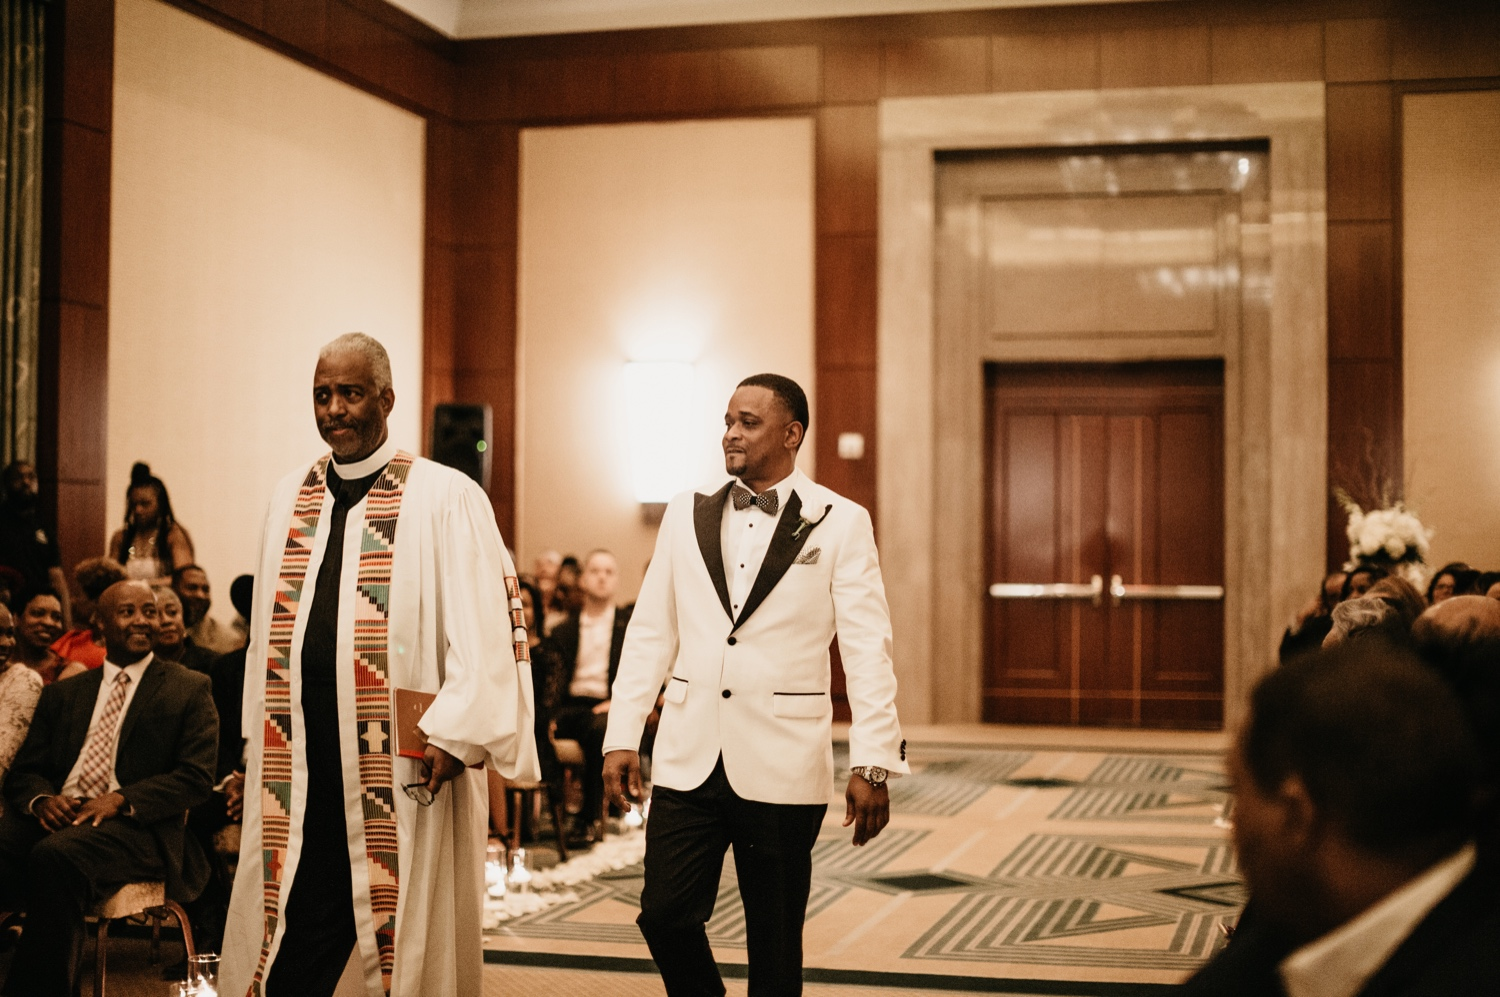 29_Ritz-carlton-wedding_charlotteNC_charlotteweddingphotographer.jpg